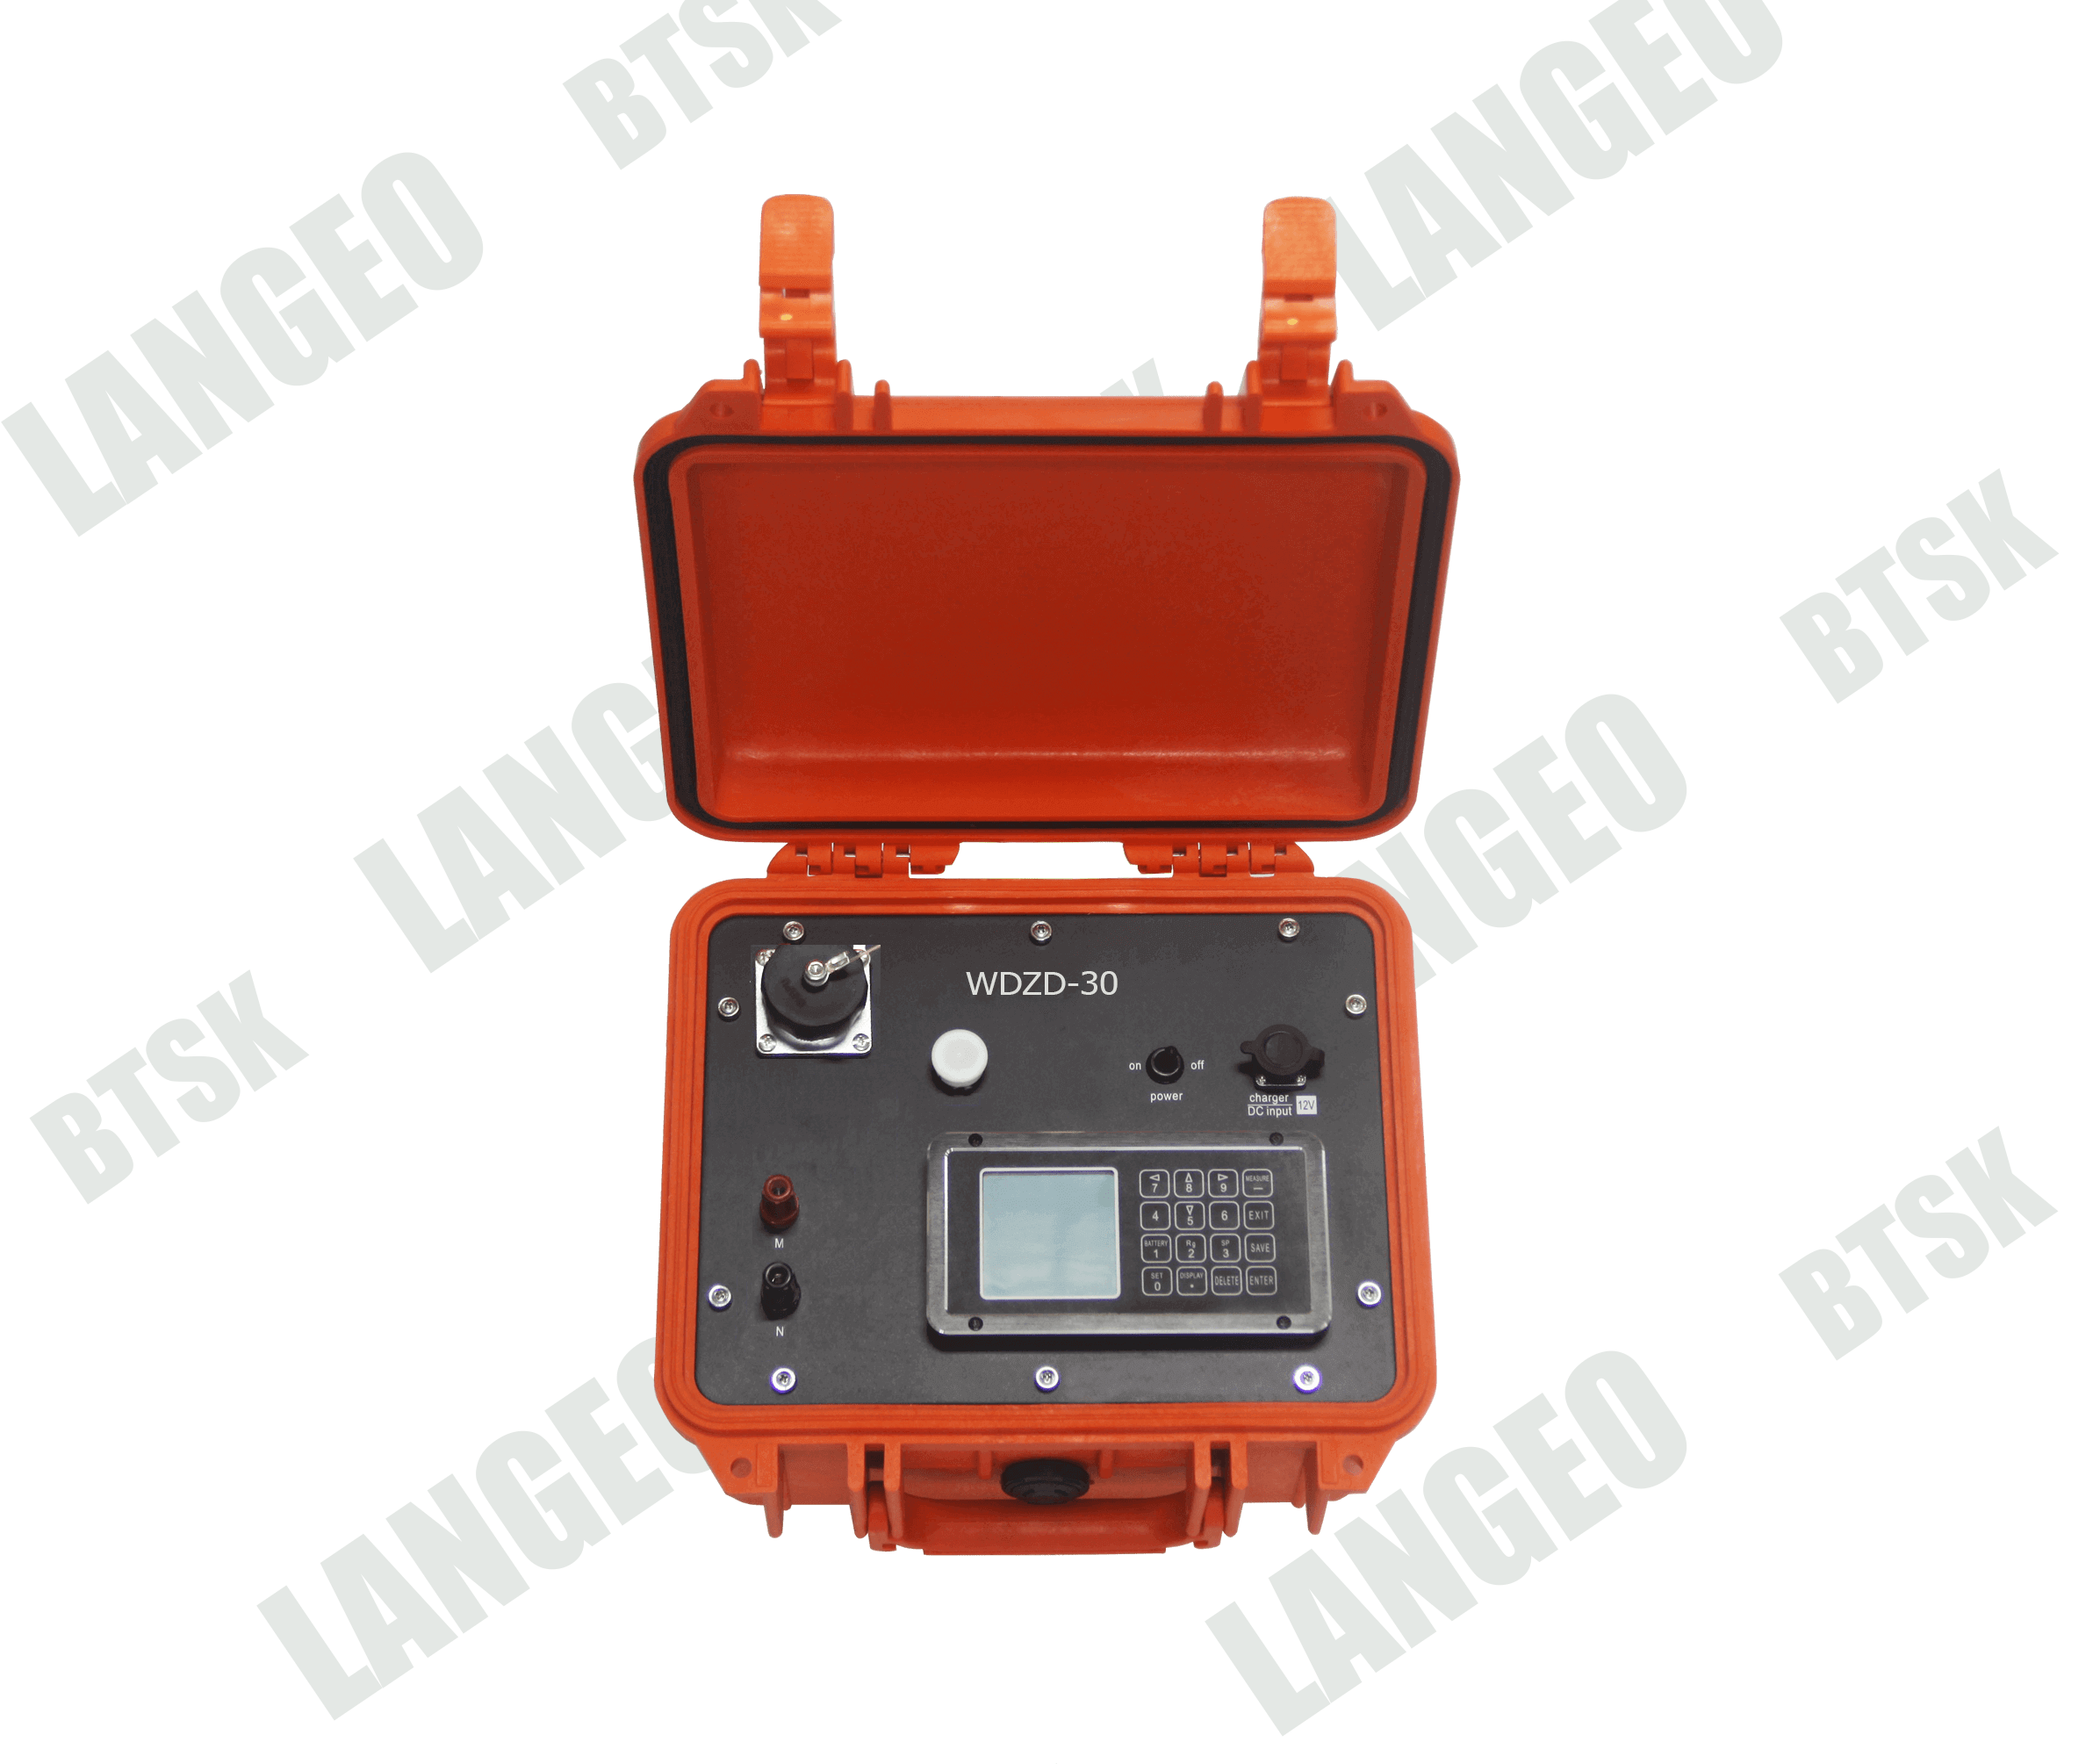 WDZS-3A DC Resistivity Meter for groundwater